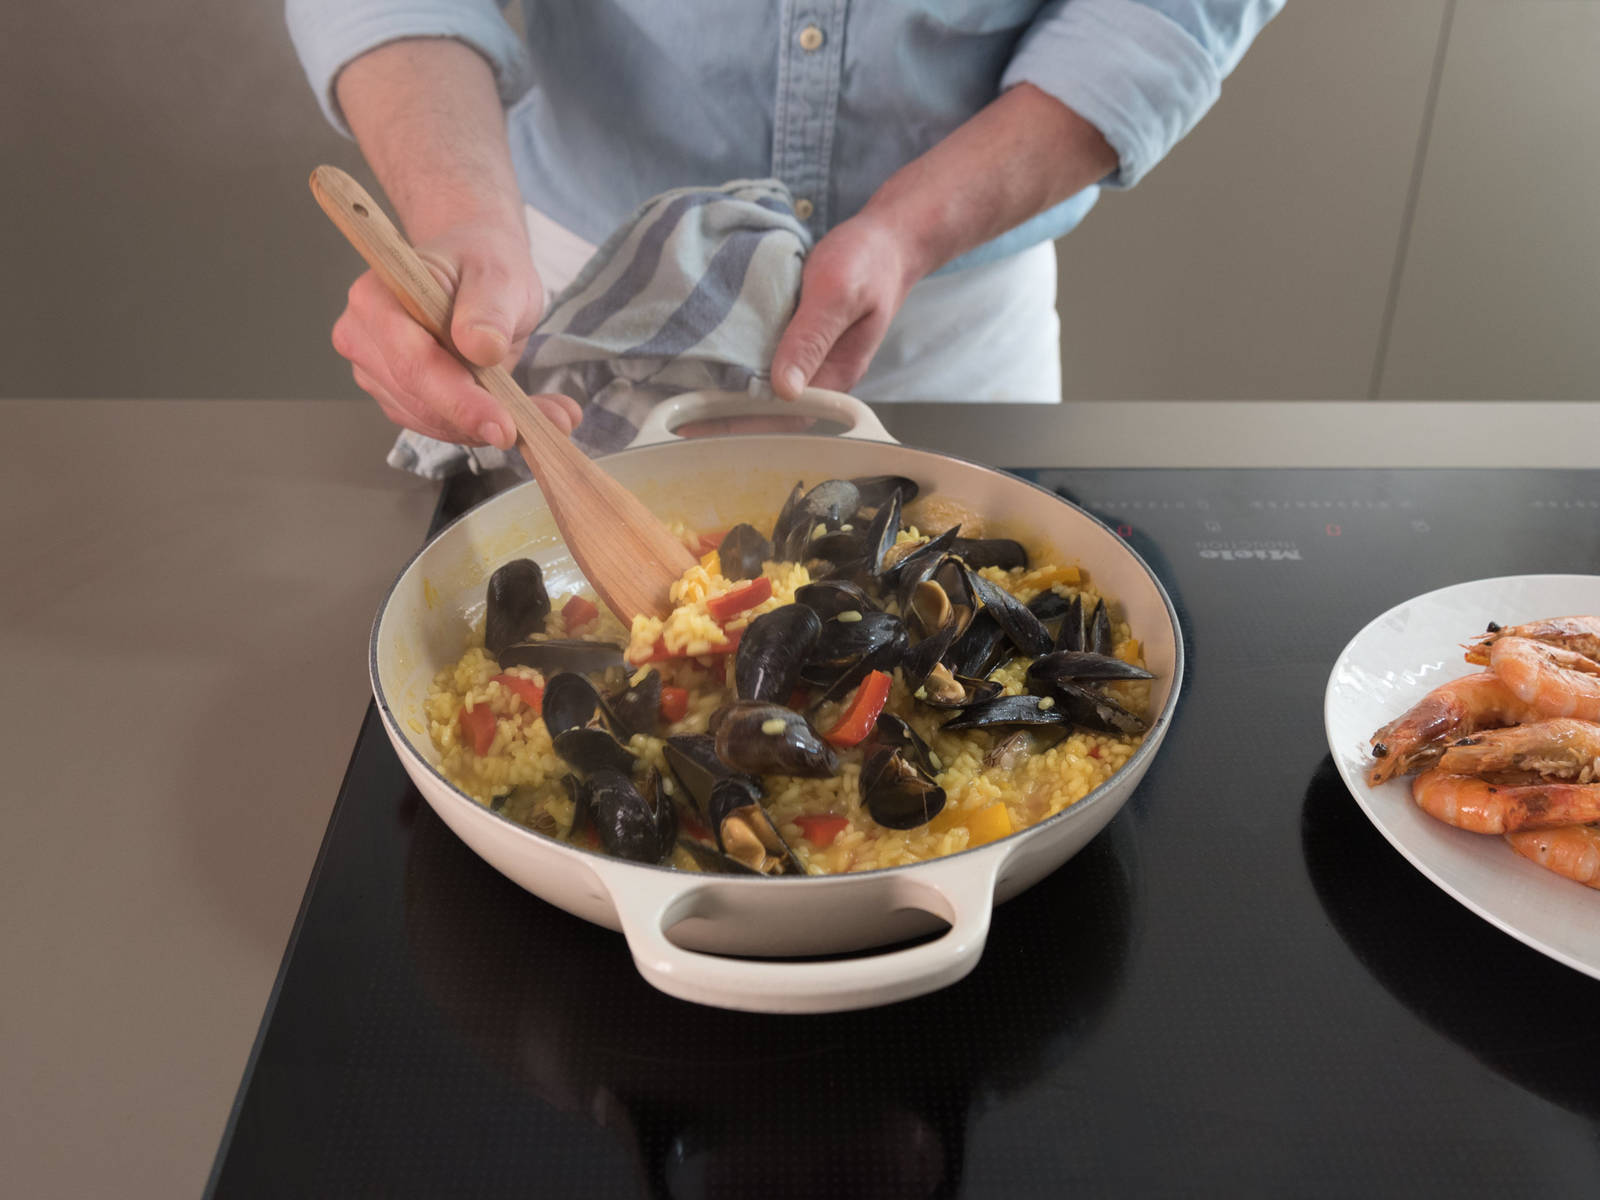 Turn down heat to medium-low and keep simmering until almost all liquid is absorbed. Add mussels, cover with lid, and simmer for approx. 5 min. Afterwards, add prawns and squid and keep simmering uncovered for approx. 5 more min., or until liquid is completely absorbed. Stir in peas.